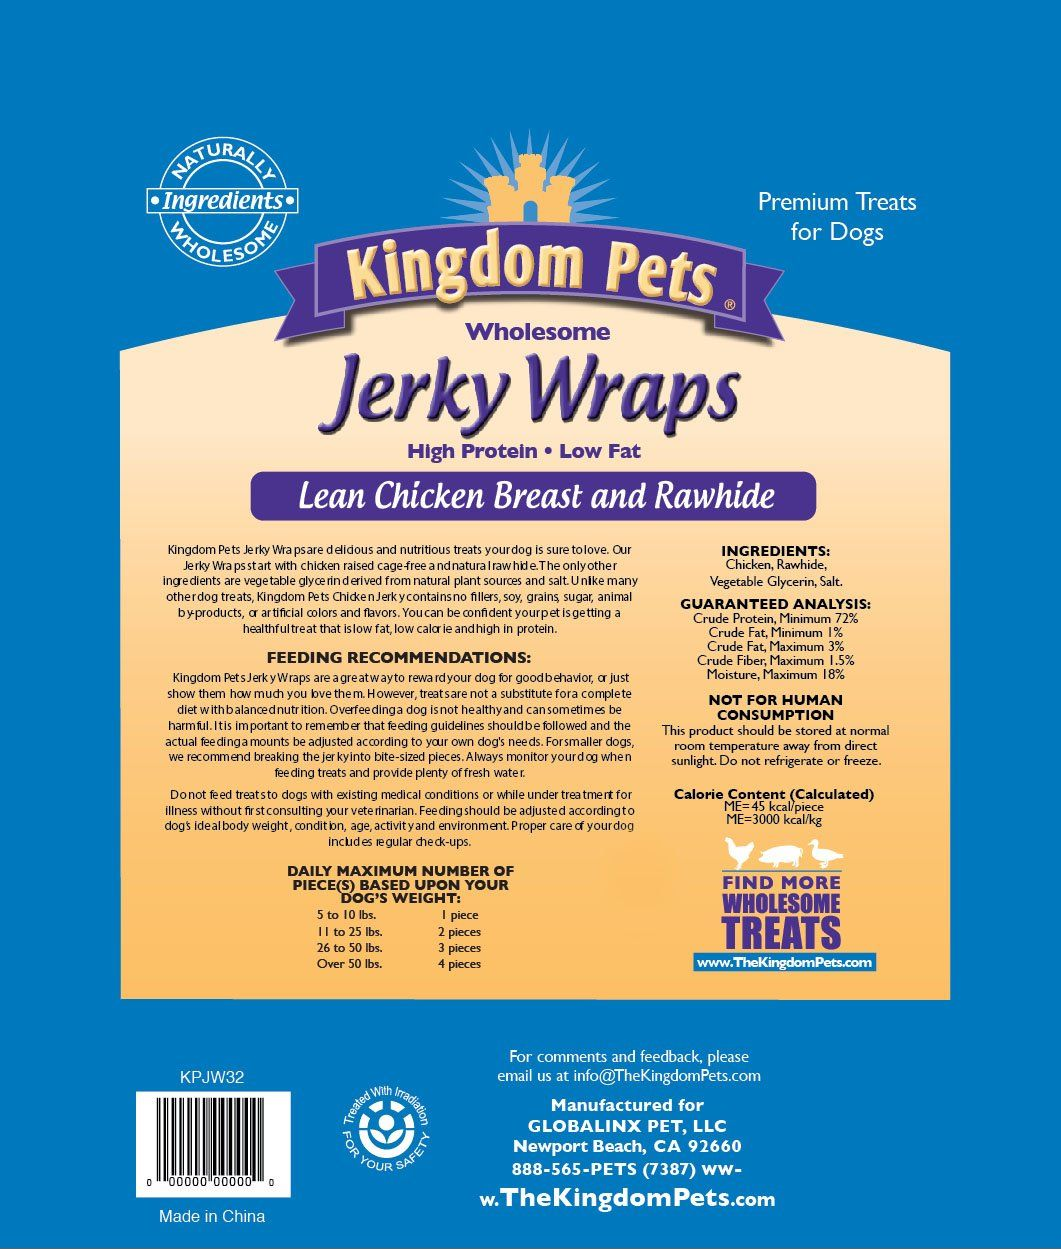 Kingdom Pets Chicken and Rawhide Jerky Wraps, Ad Chicken